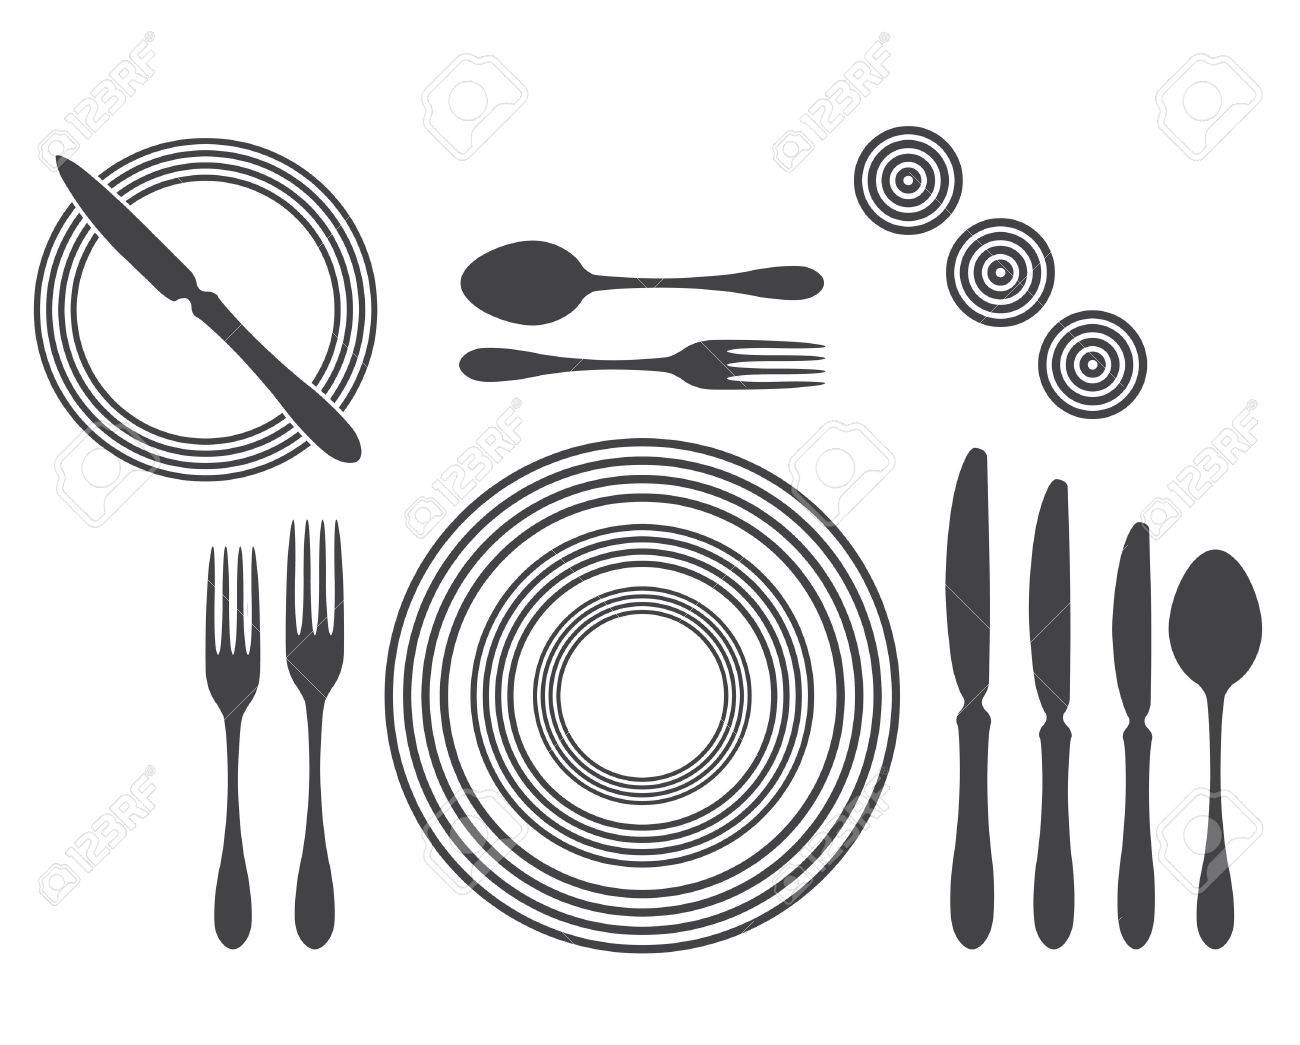 Etiquette Proper Table Setting Stock Vector - 17302521  sc 1 st  123RF.com & Etiquette Proper Table Setting Royalty Free Cliparts Vectors And ...